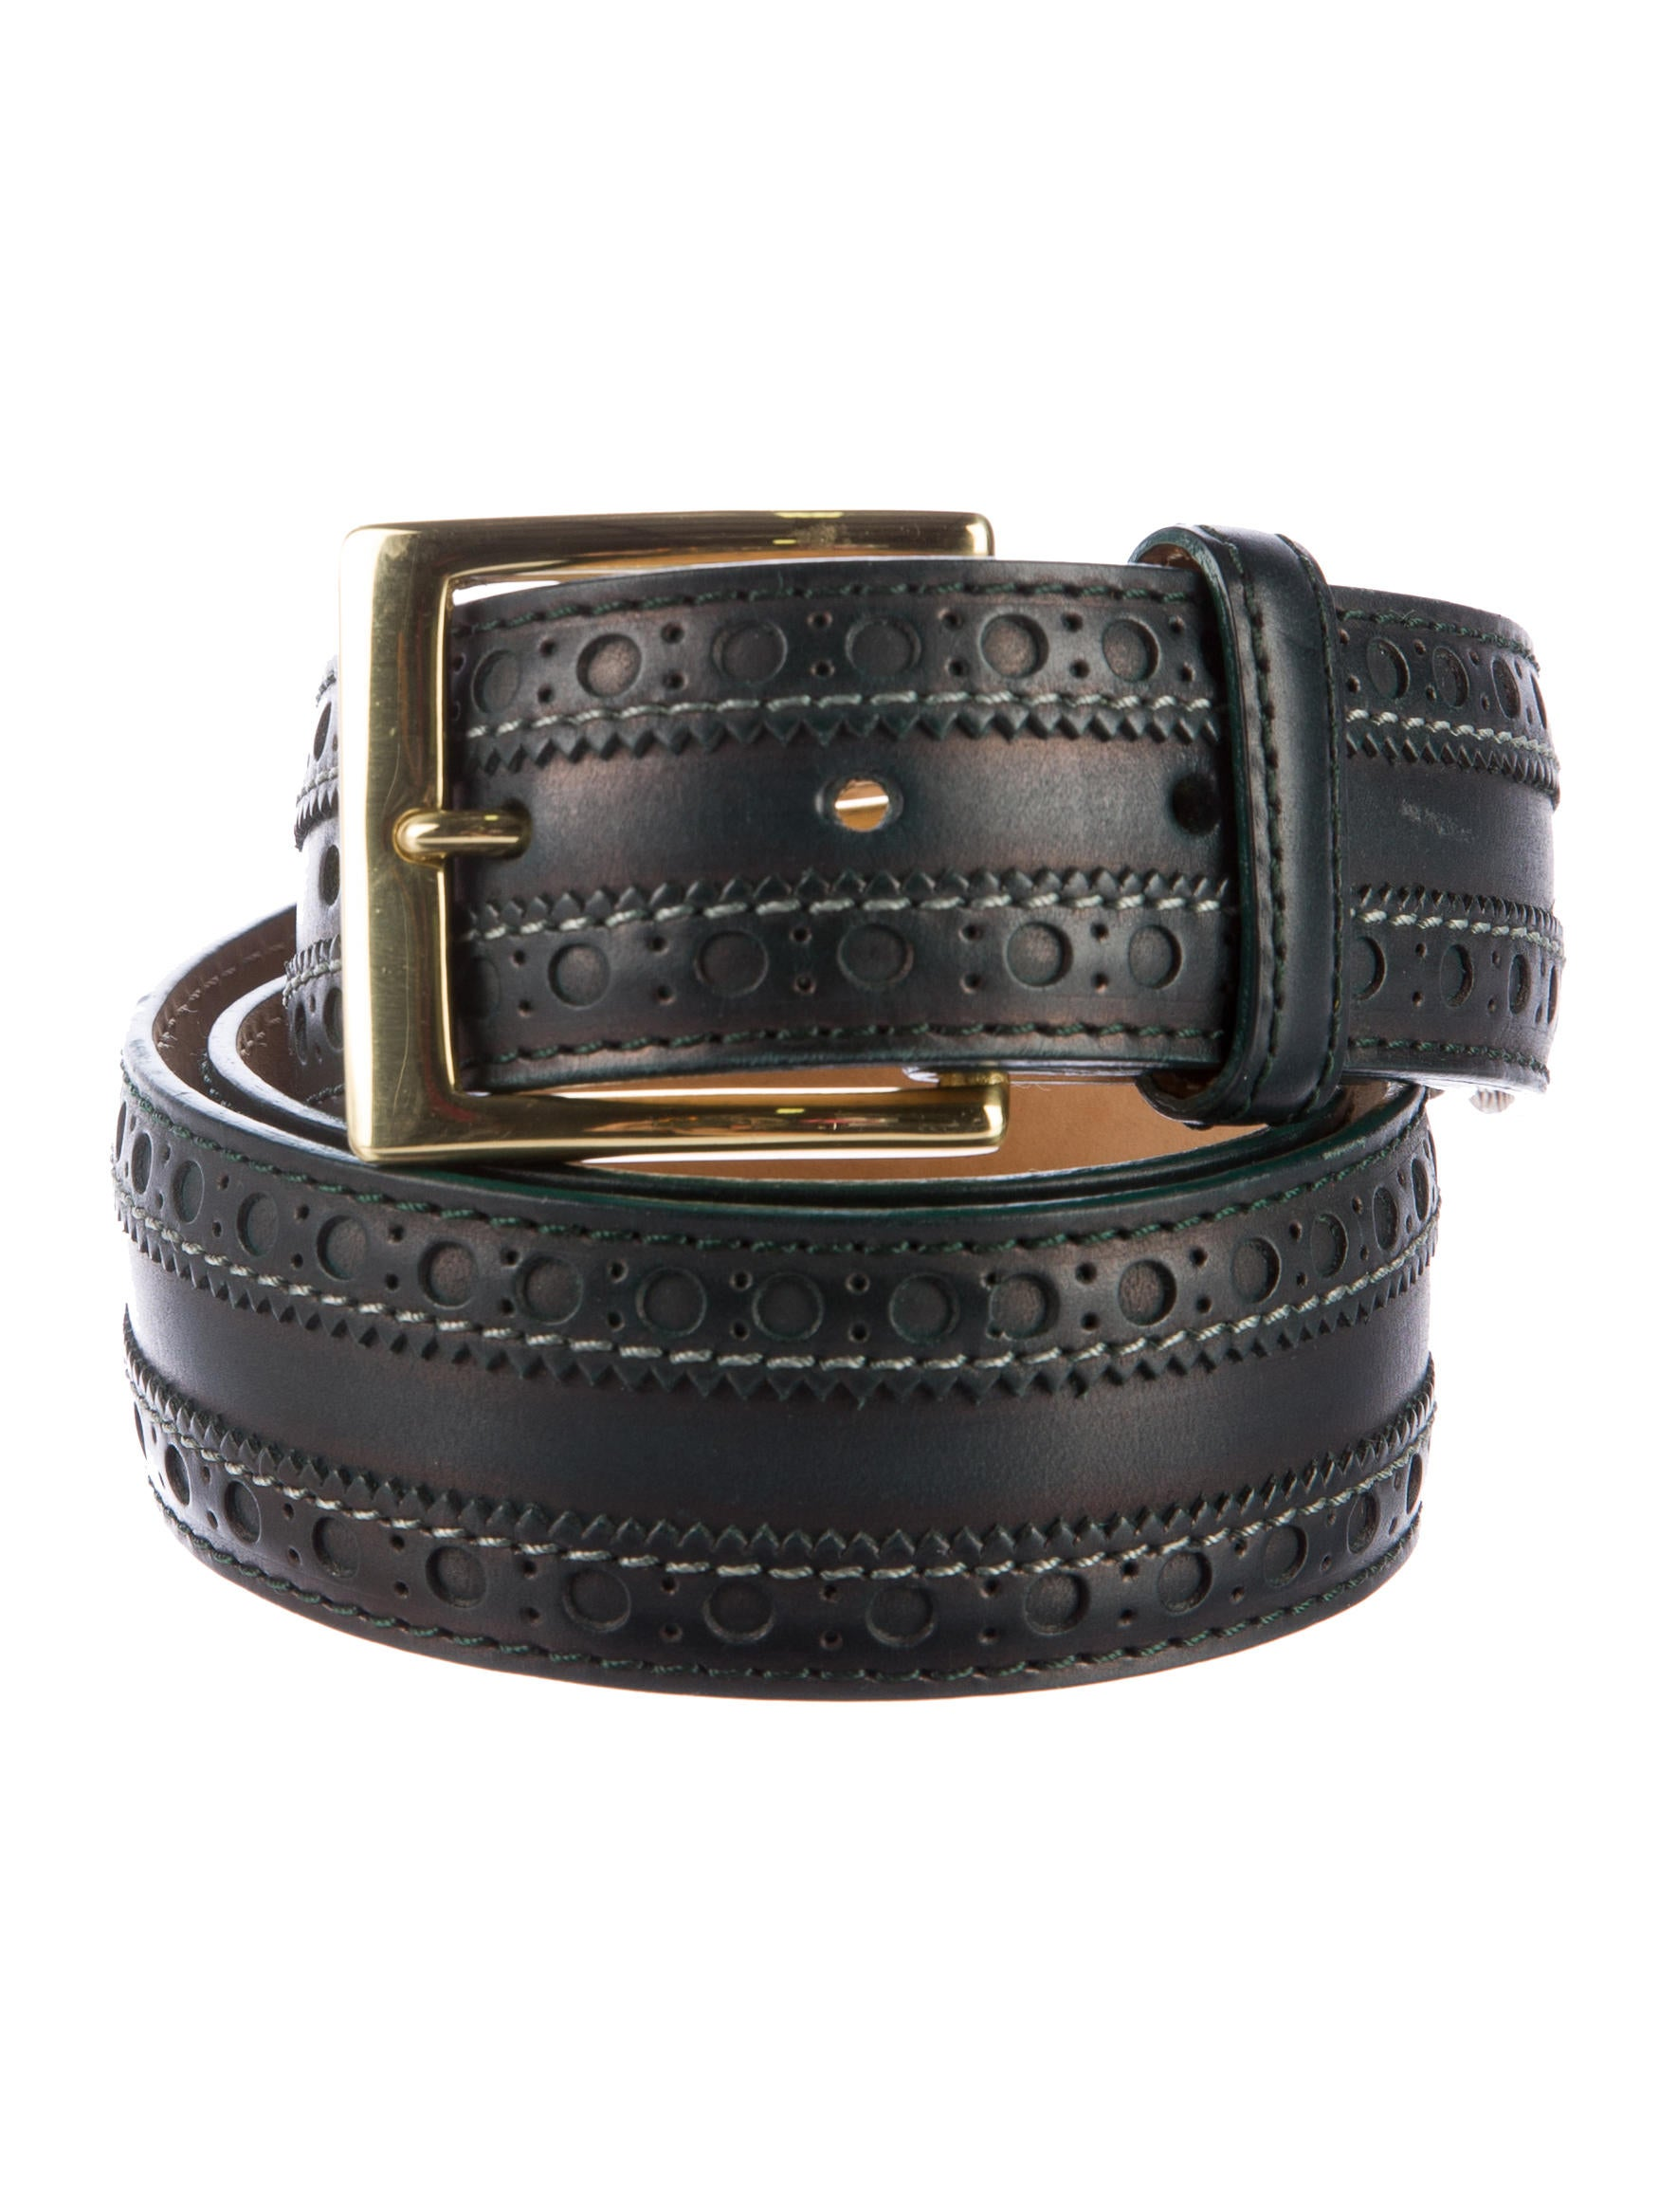 paul smith leather brogue belt accessories wps23747